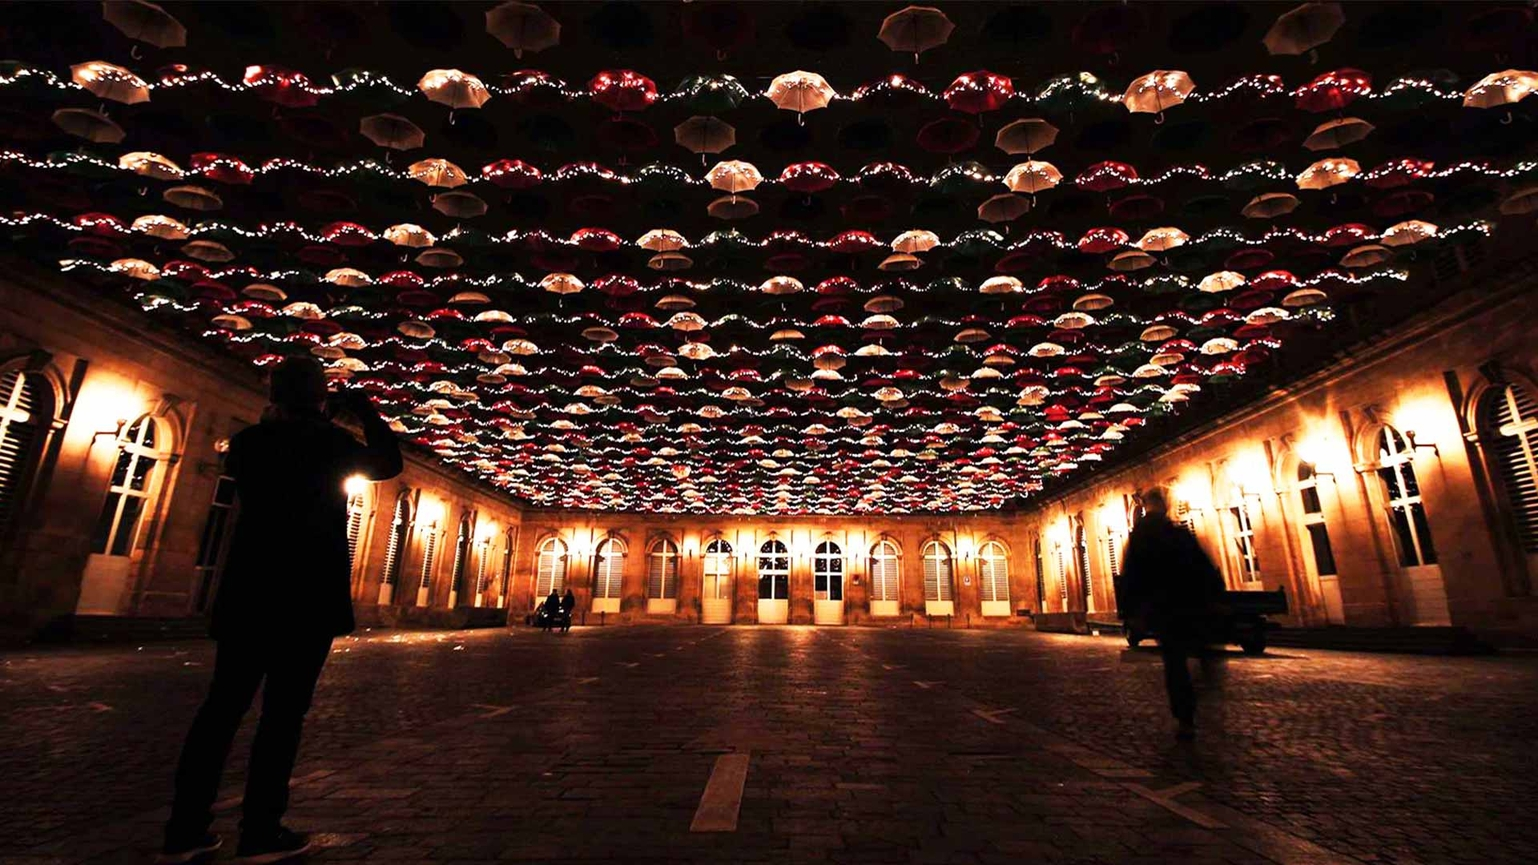 Umbrella Sky Project Natal - Metz'15